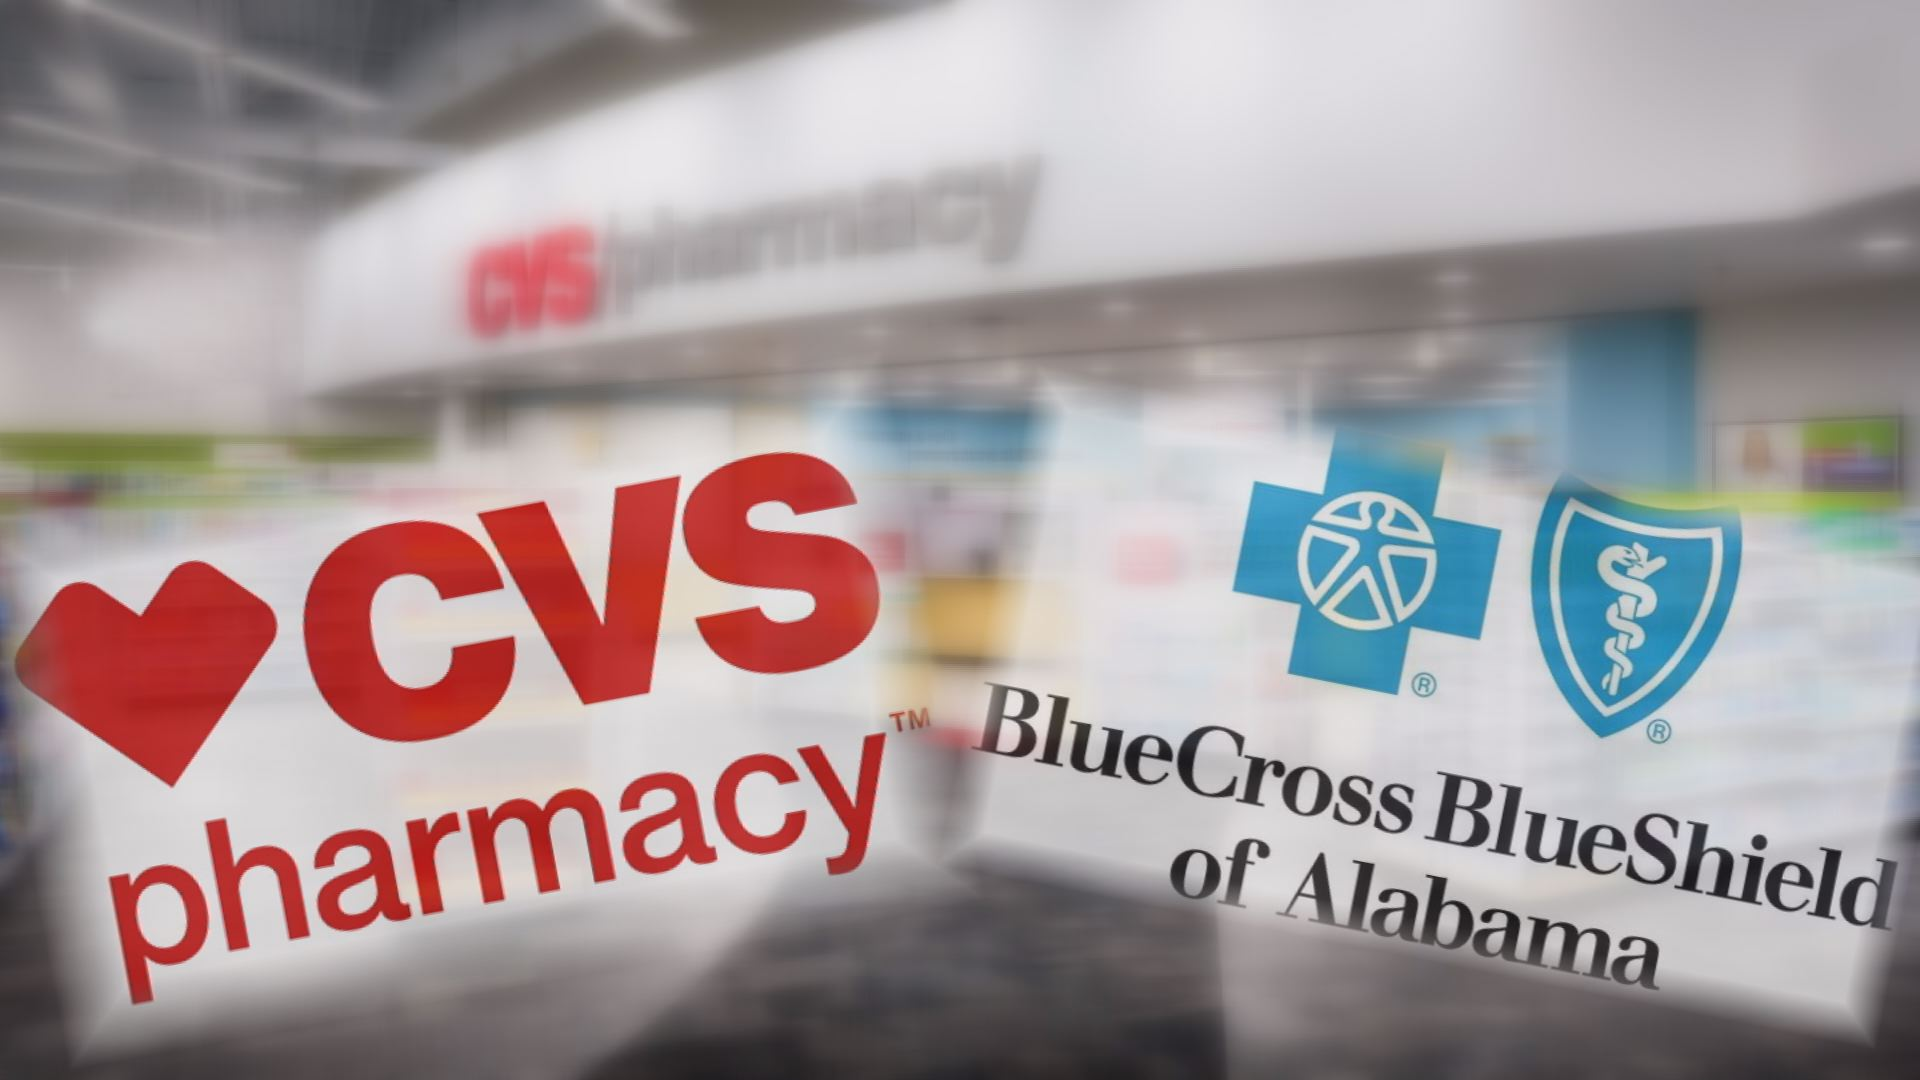 cvs-pharmacy-blue-cross-blue-shield_293495